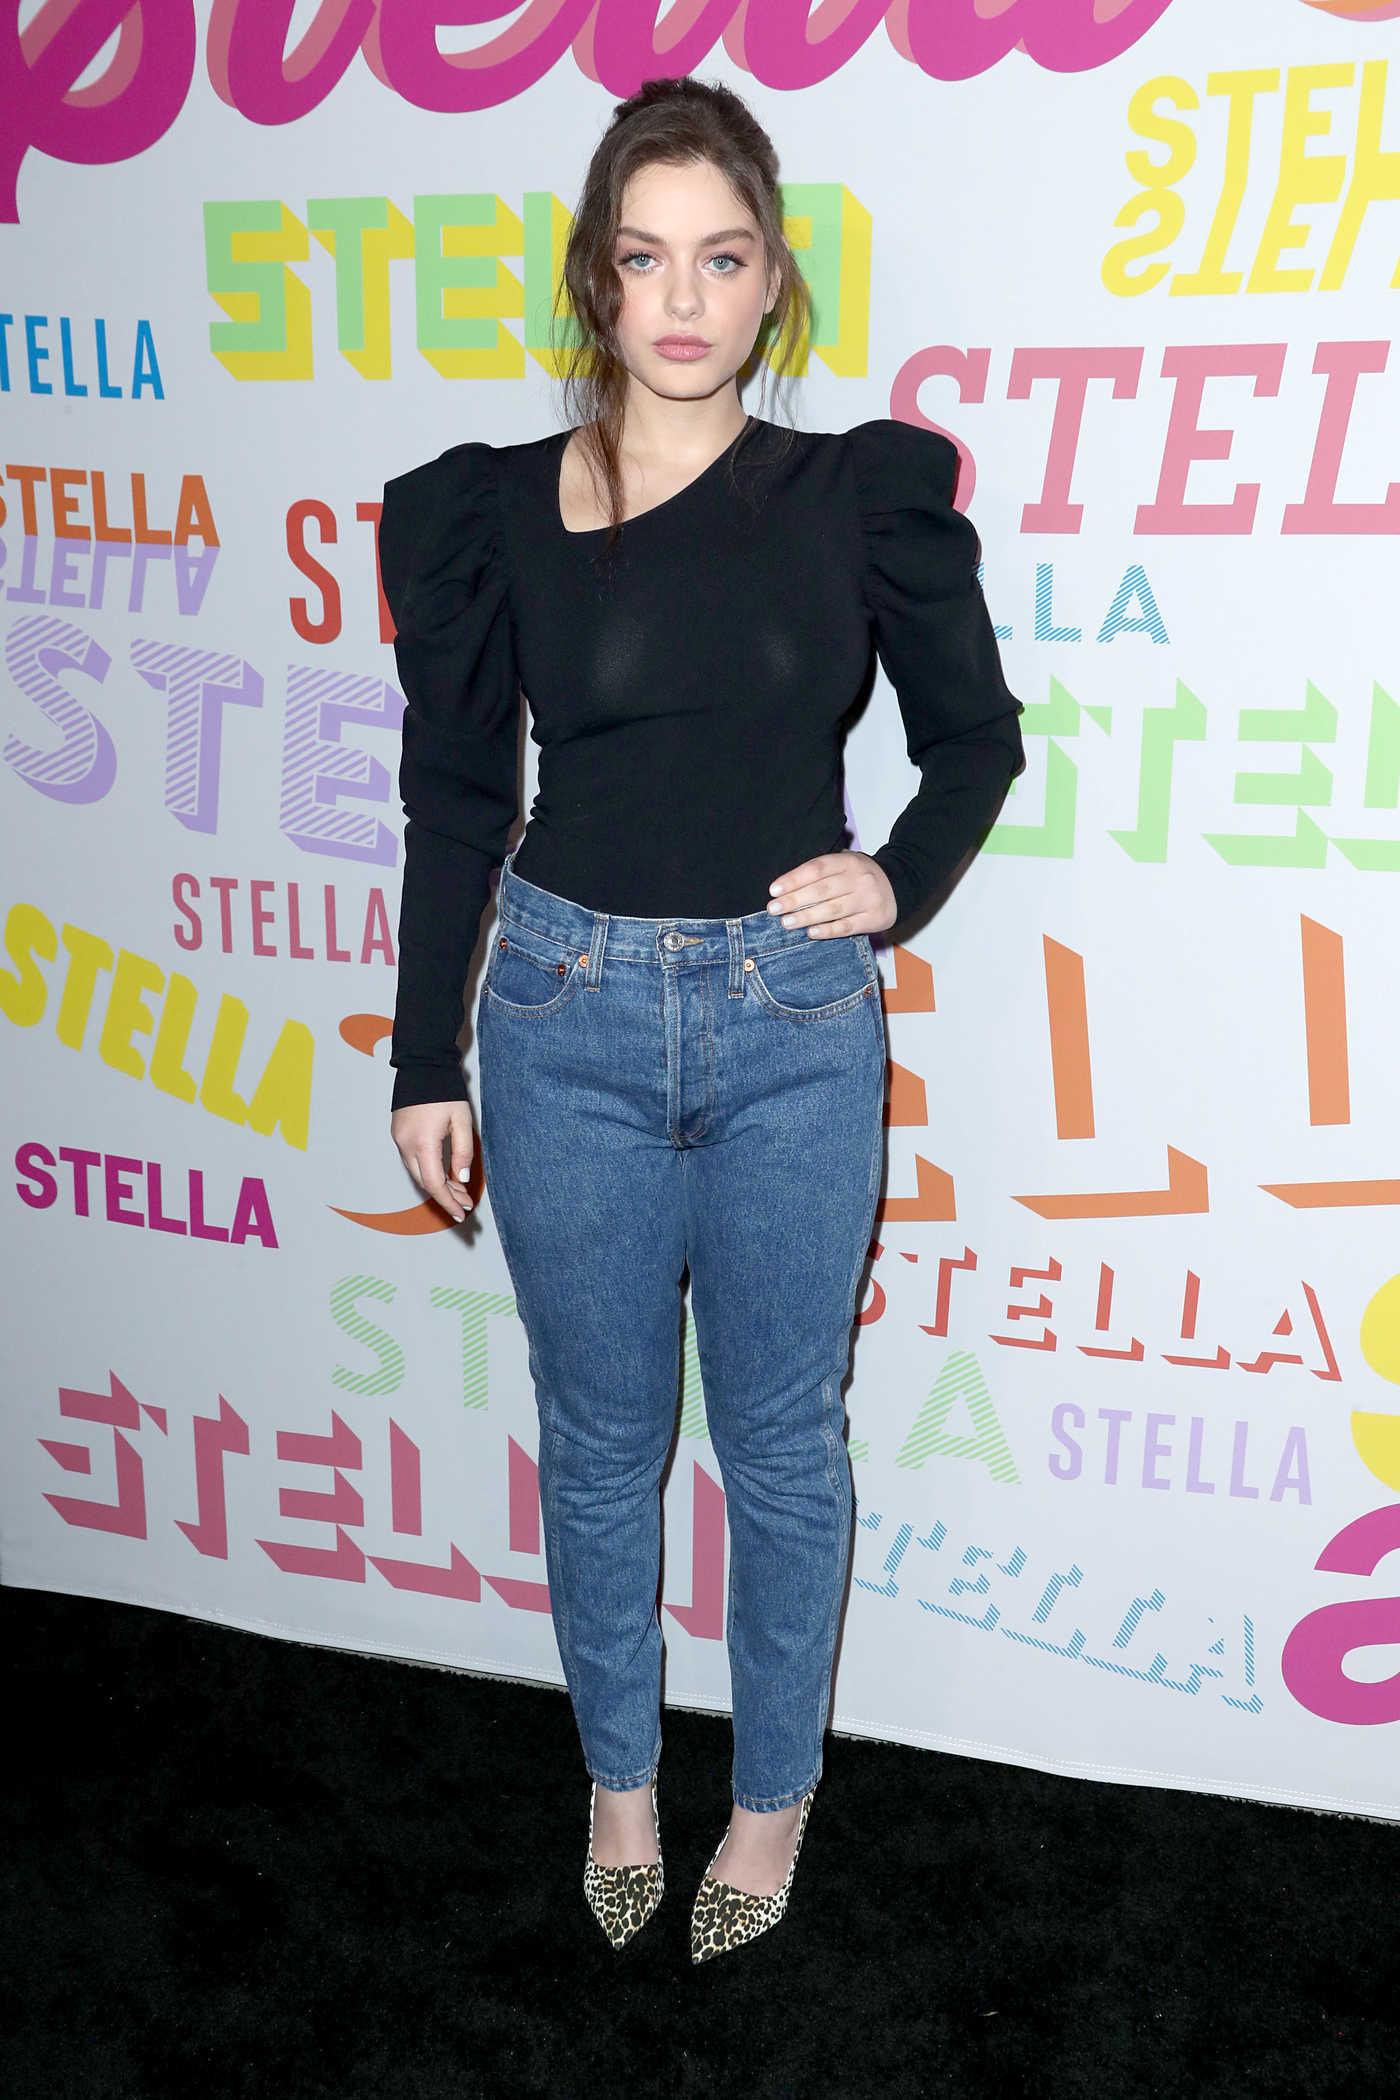 Odeya Rush at the Stella McCartney Show in Hollywood 01/16/2018